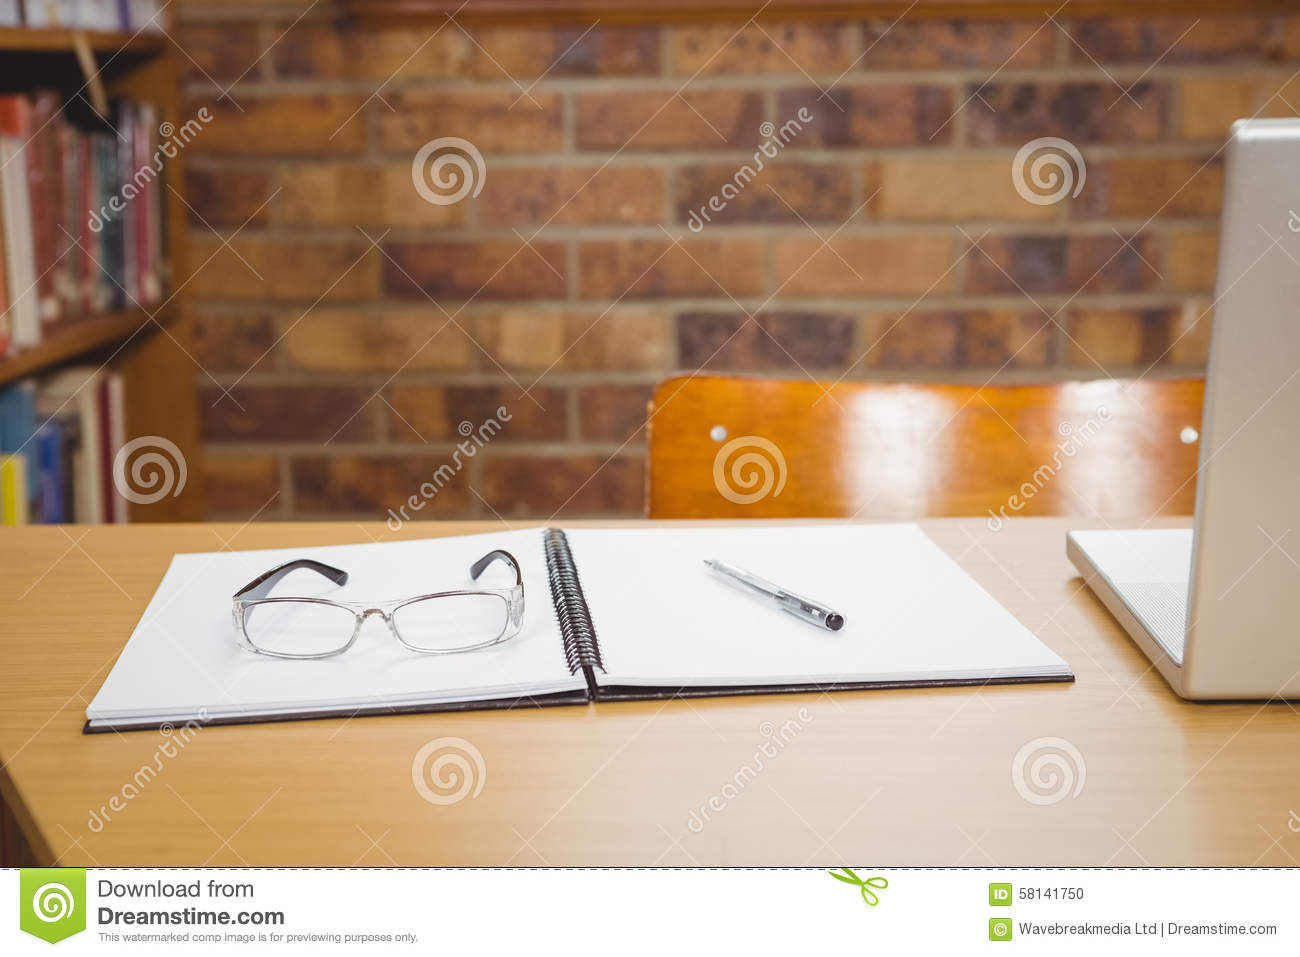 Desk with laptop, glasses and ledger on it